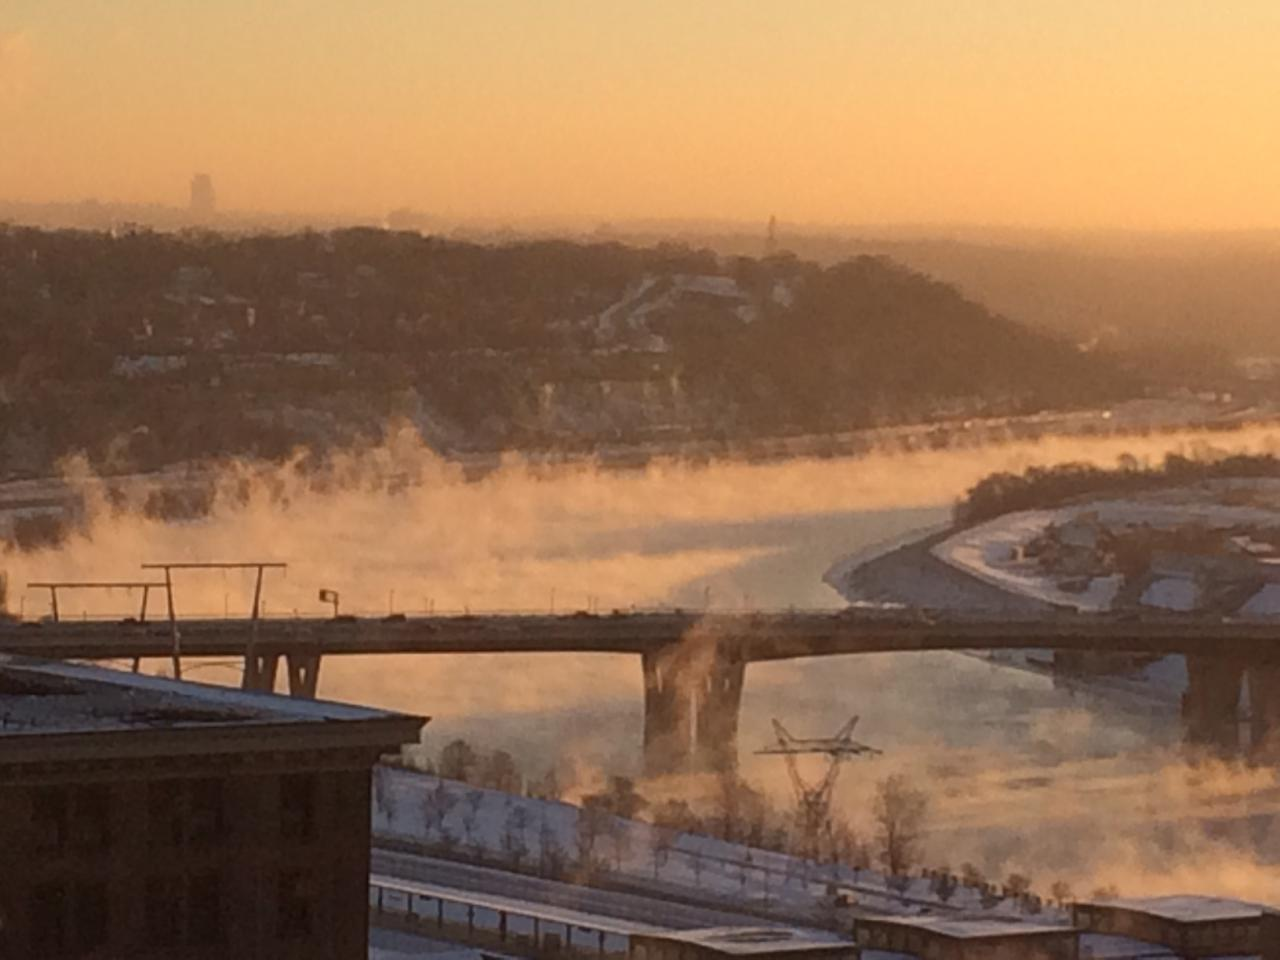 Mist rising from the Mississippi on a cold December dawn